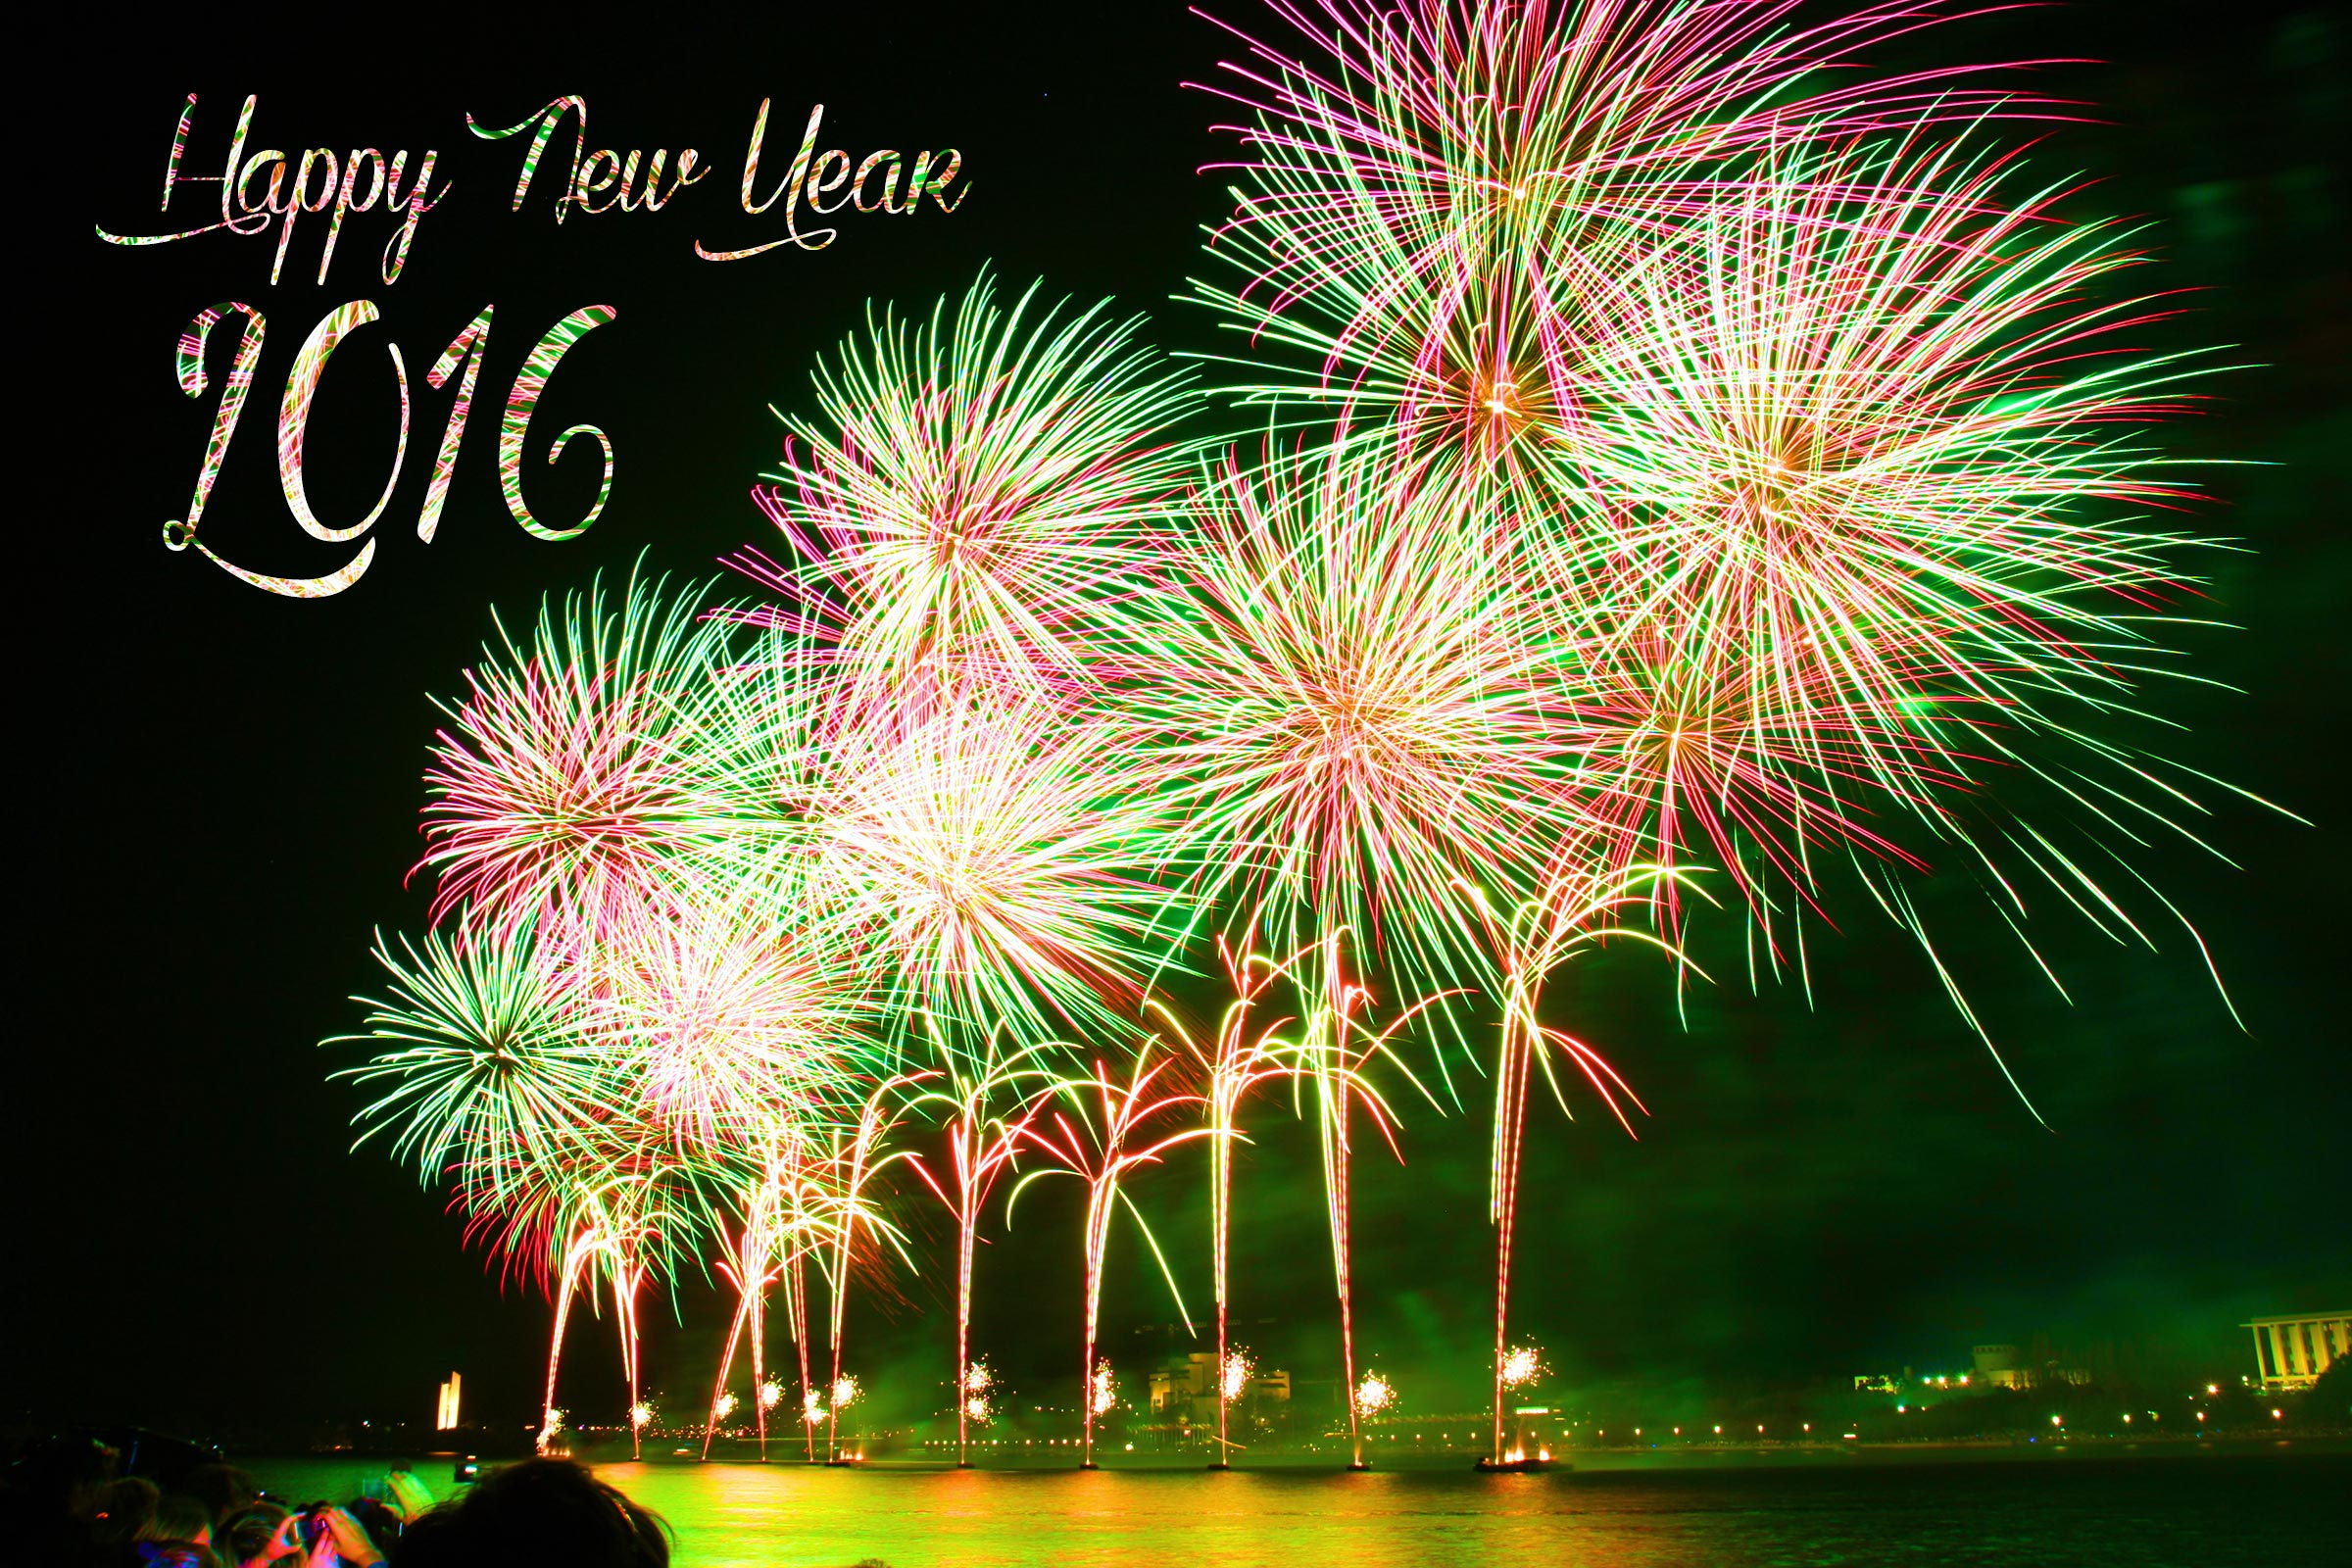 Happy New Year 2016 Wallpapers HD Images Facebook Cover photos 2400x1600